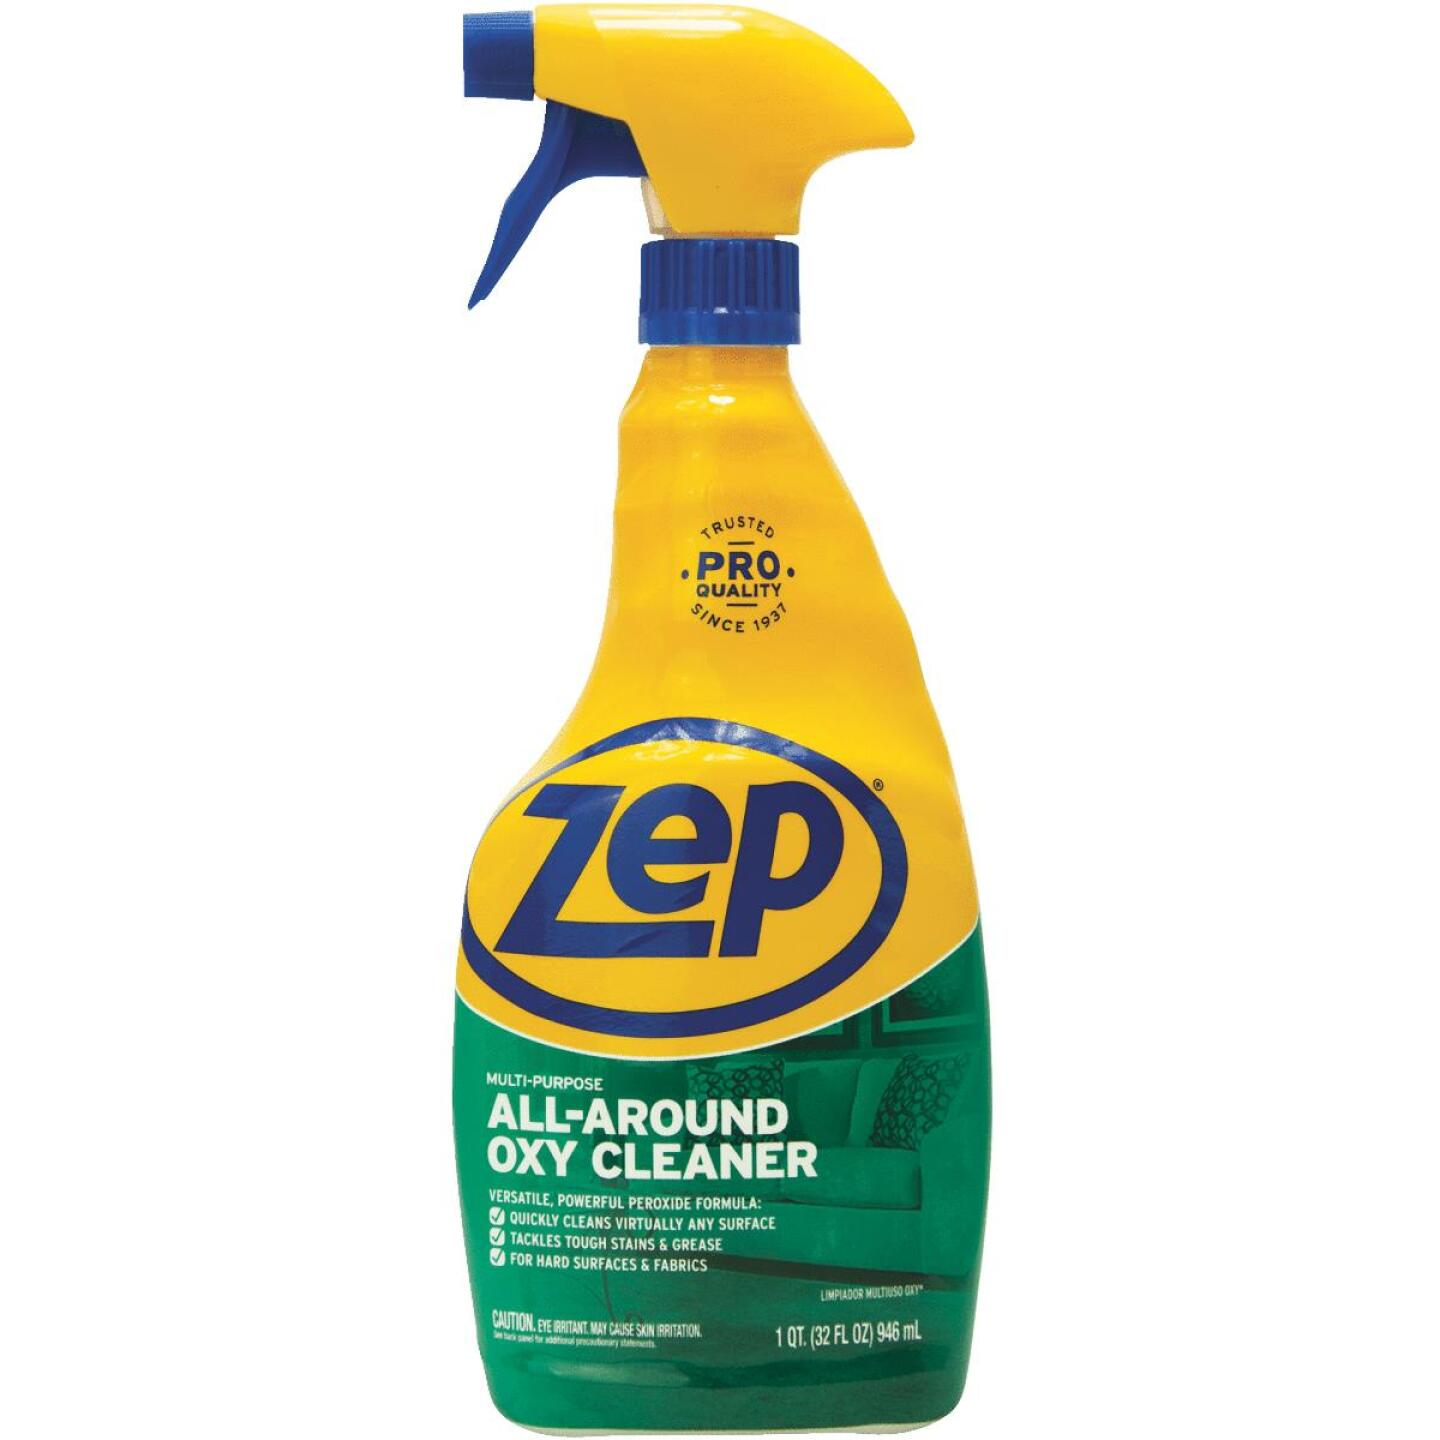 Zep Commercial All-Around 32 Oz. Liquid Oxy Cleaner & Degreaser Image 1